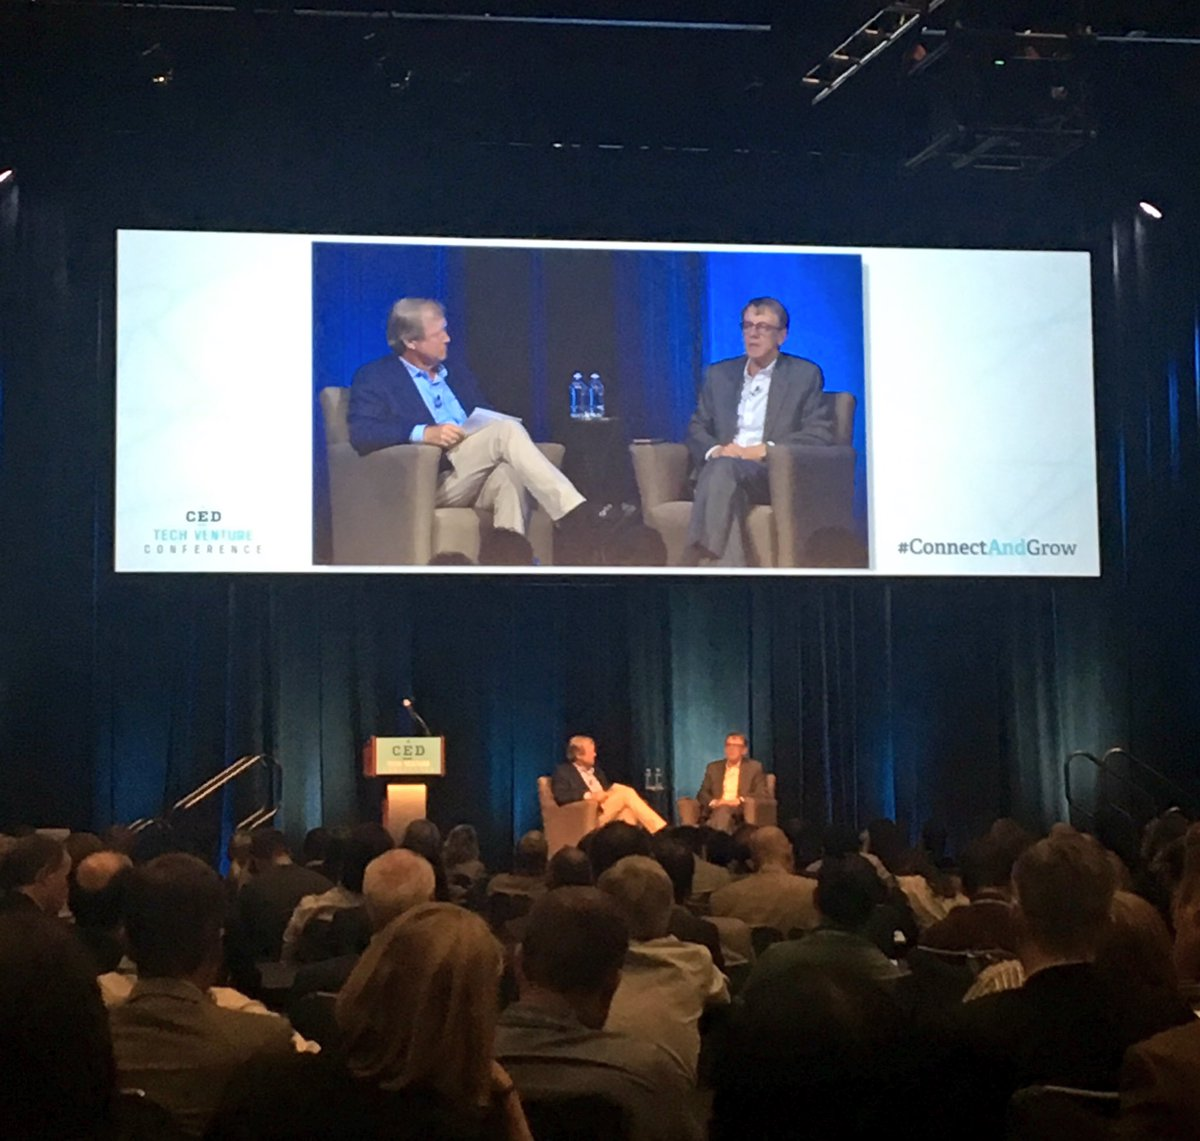 .@johndoerr says the future of tech is in #AI and #IA. #CEDTVC #ConnectAndGrow https://t.co/ccqMDEsLhj